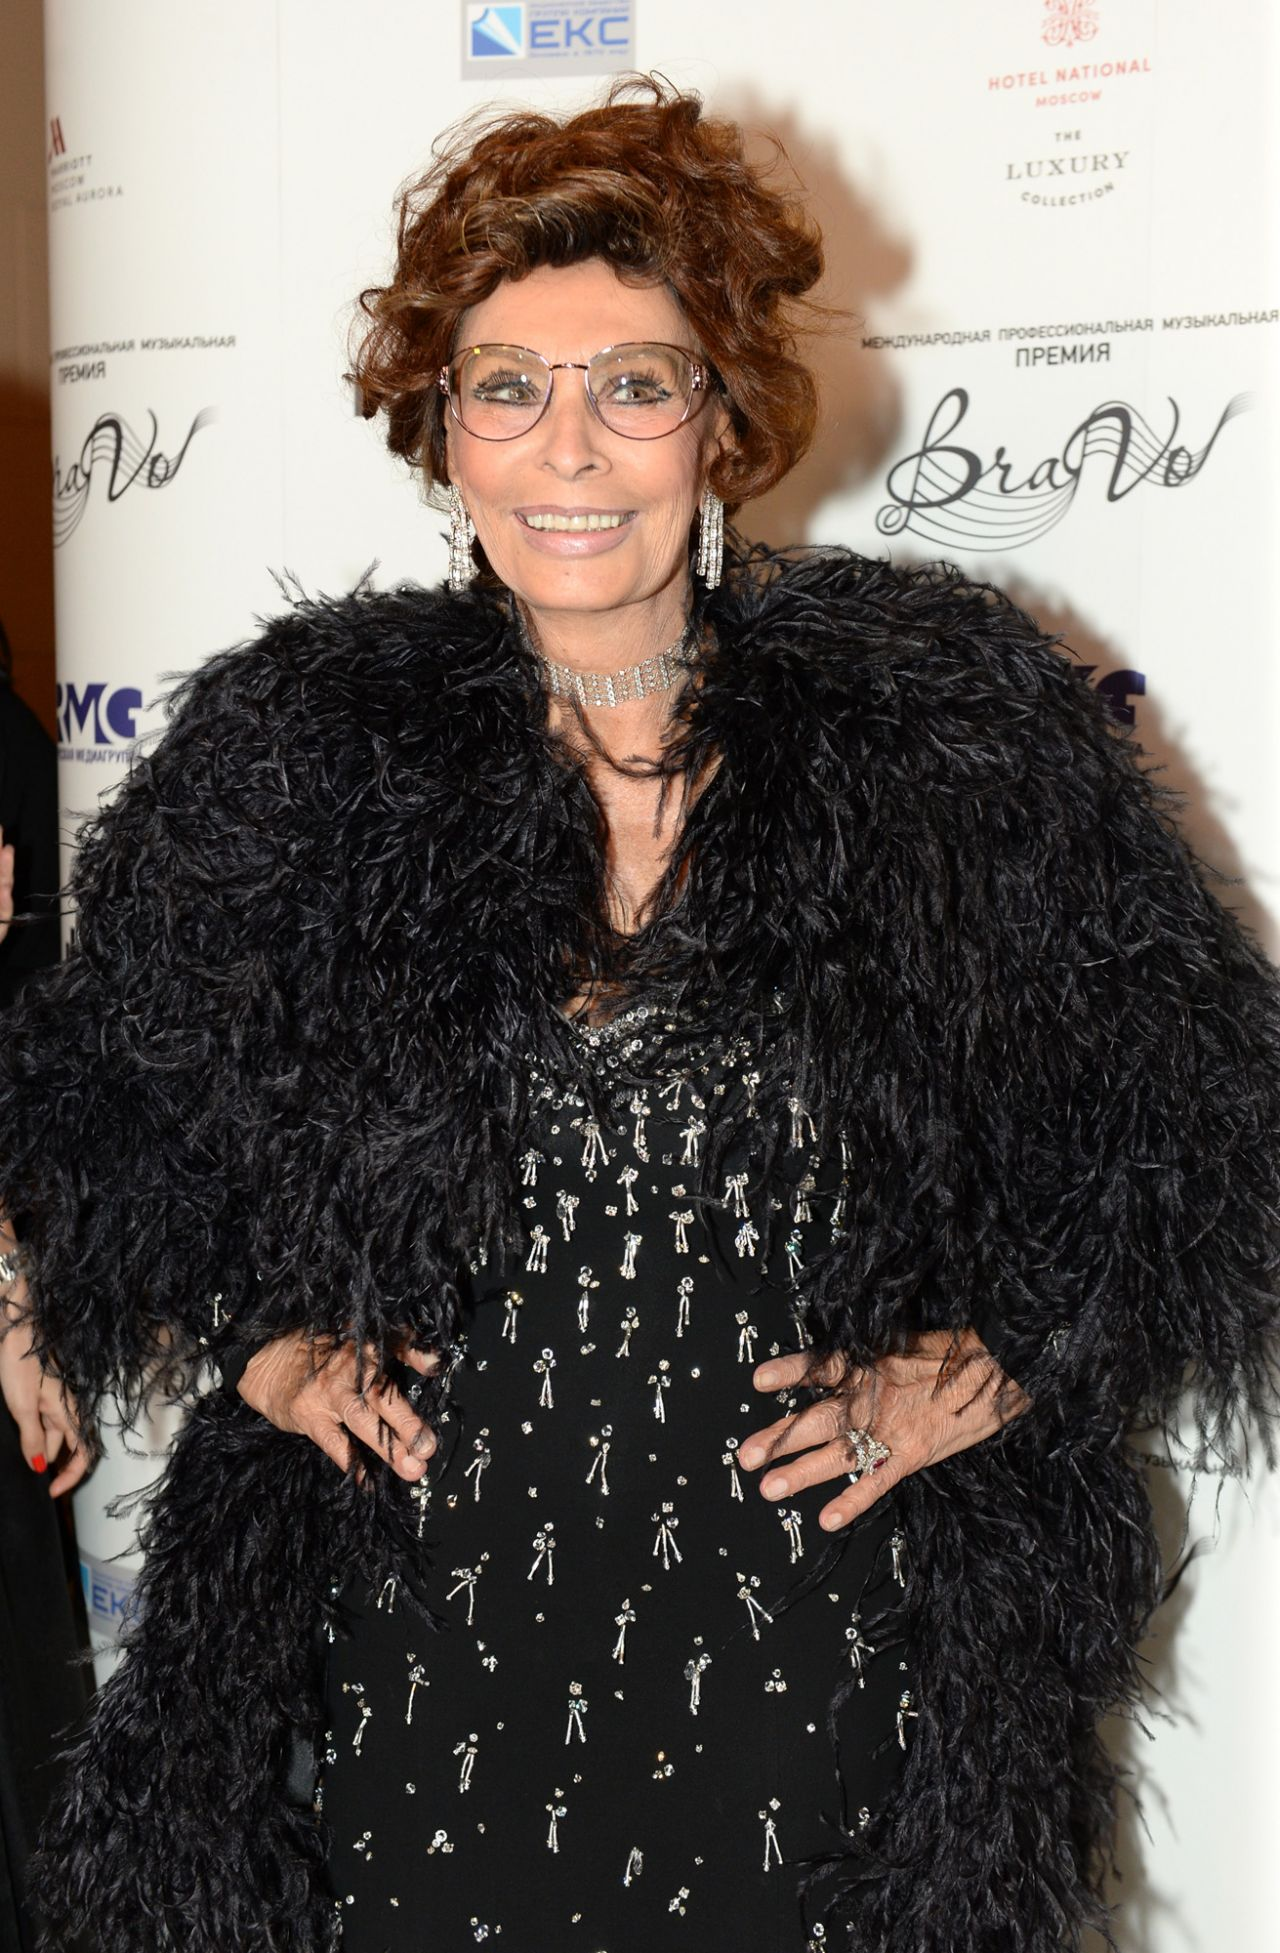 Sophia Loren Bravo Awards 2017 Ceremony In Moscow